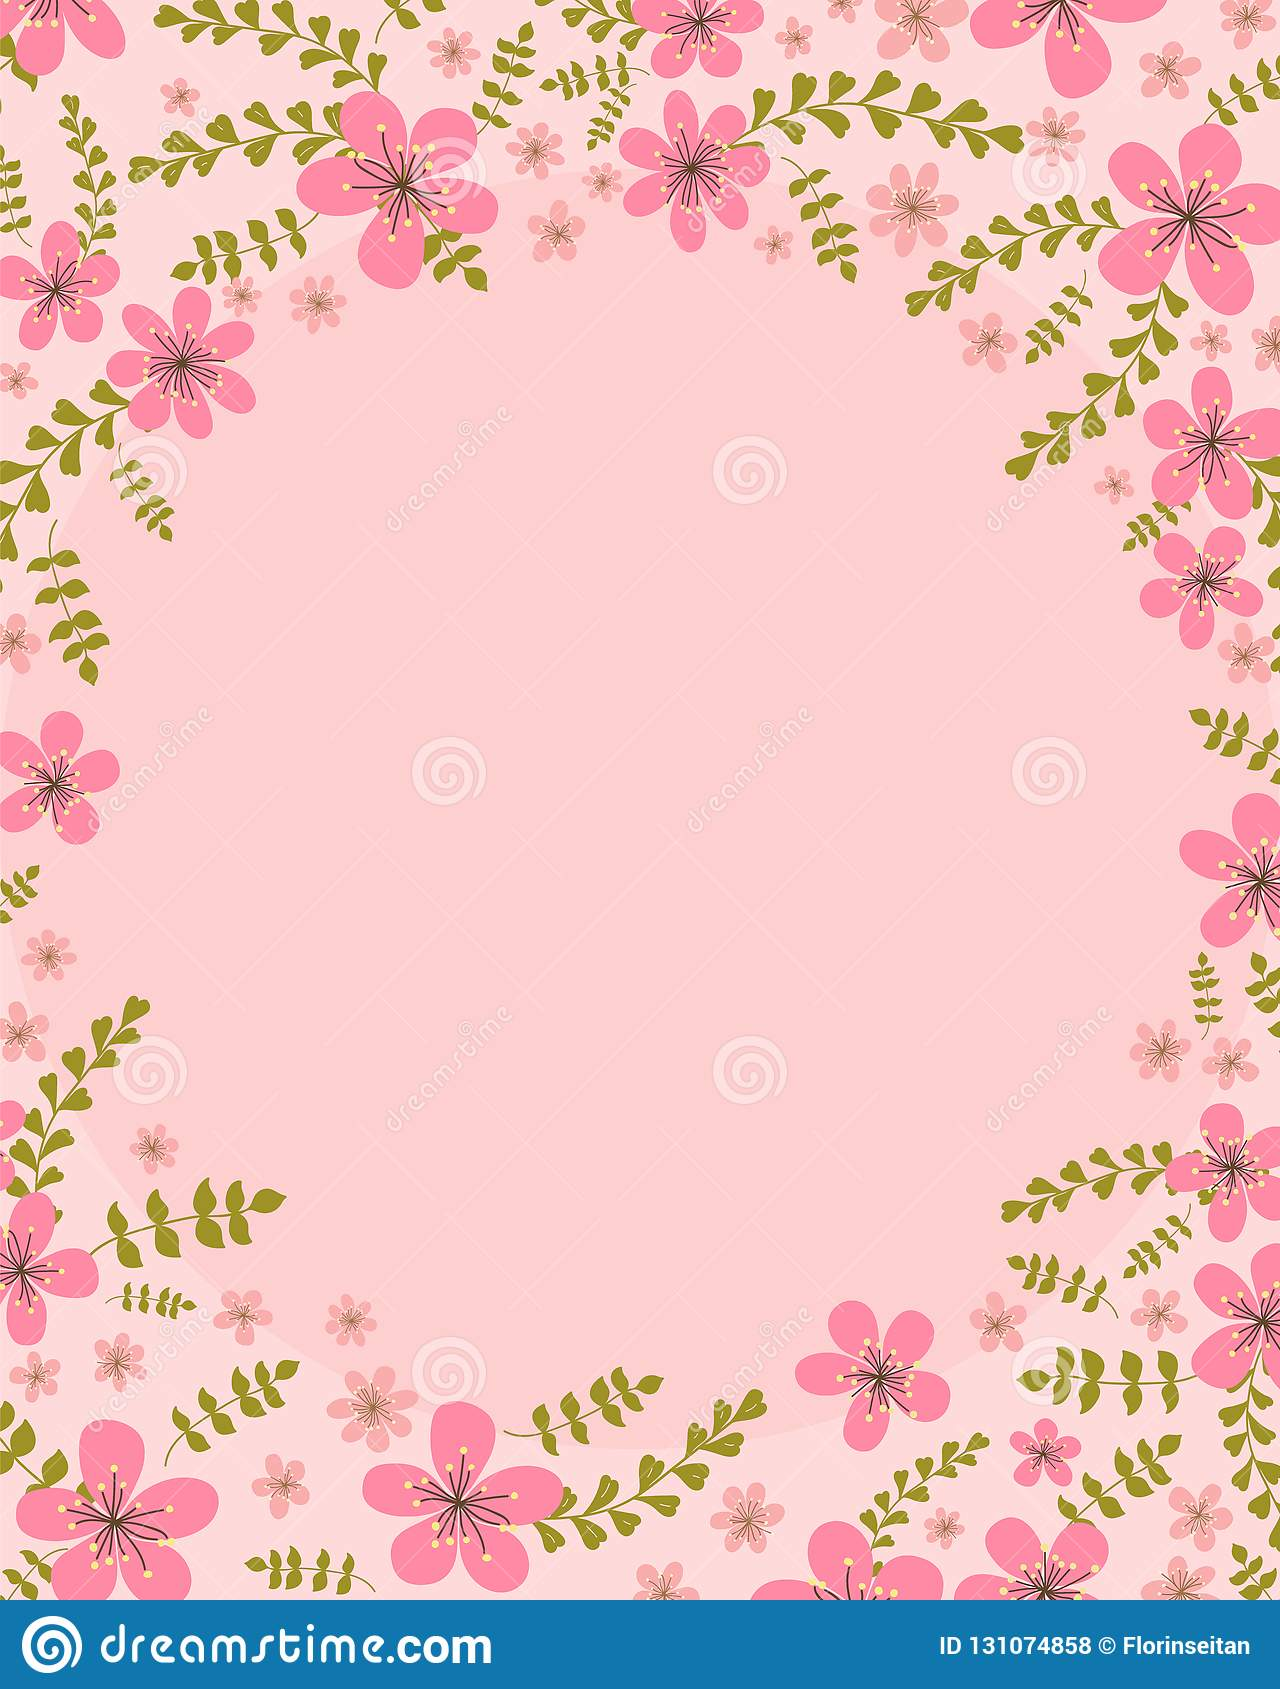 Floral Invitation Card Template Design Cherry Blossom Flowers With